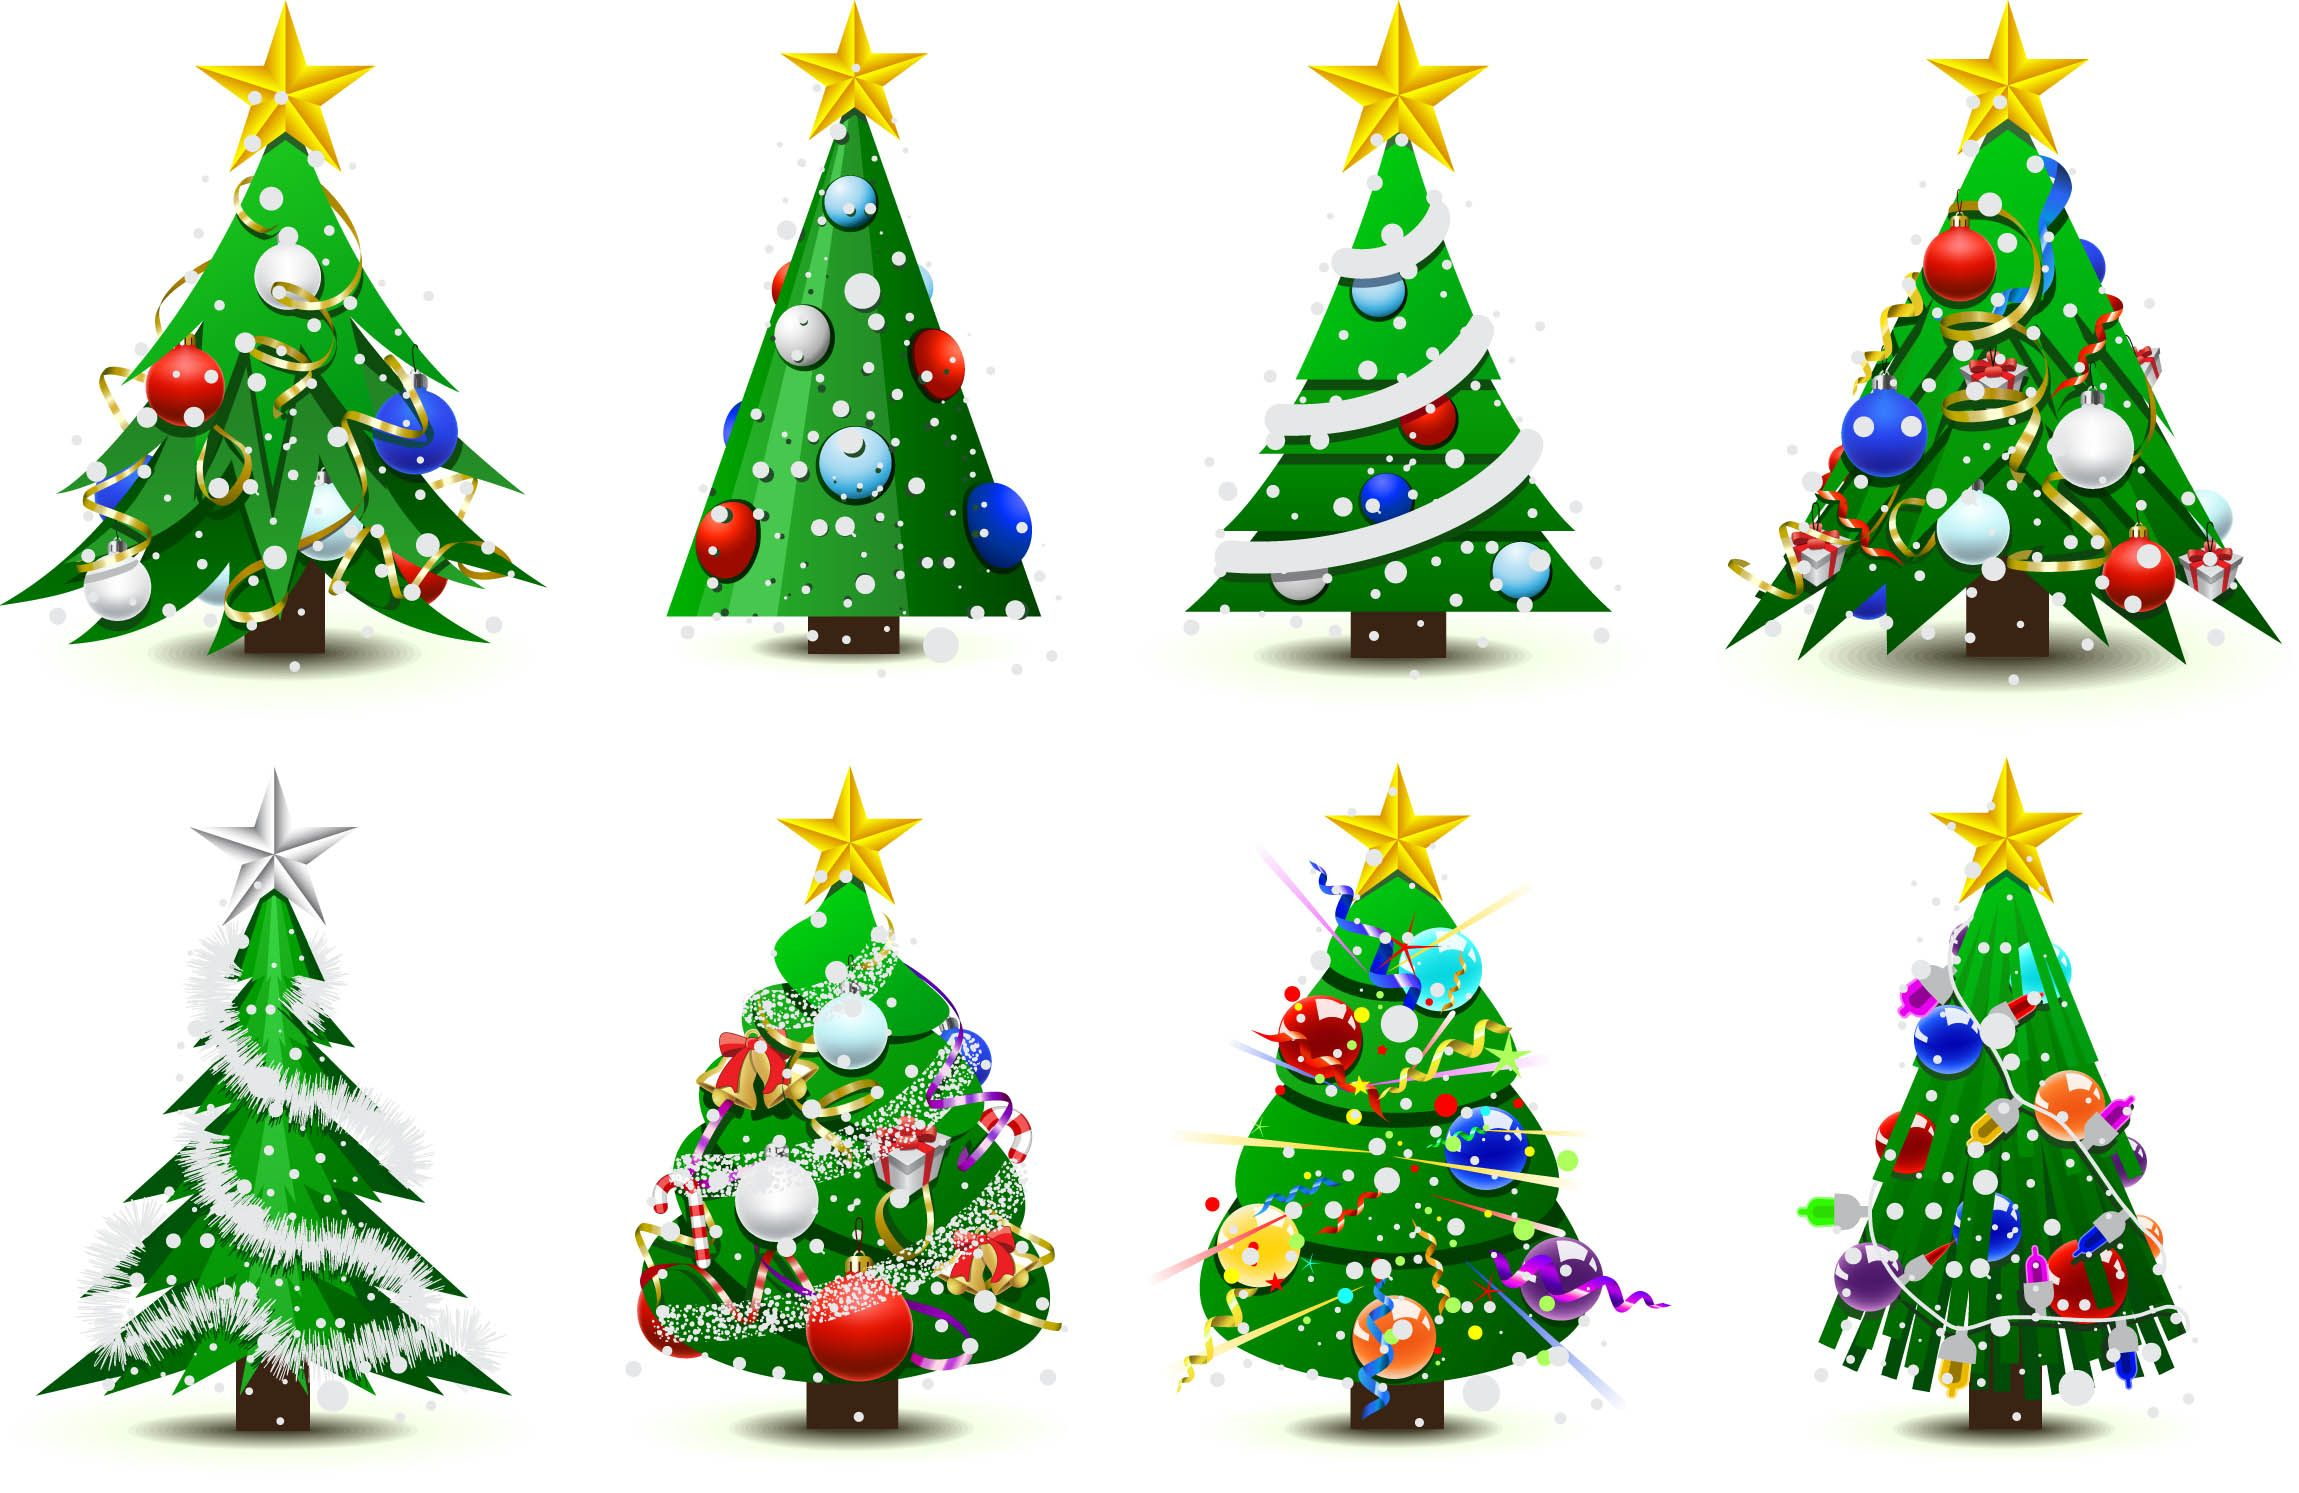 Free Vector Gorgeous Christmas Tree Vector Christmas Tree Design Christmas Tree Decorations Tree Icon